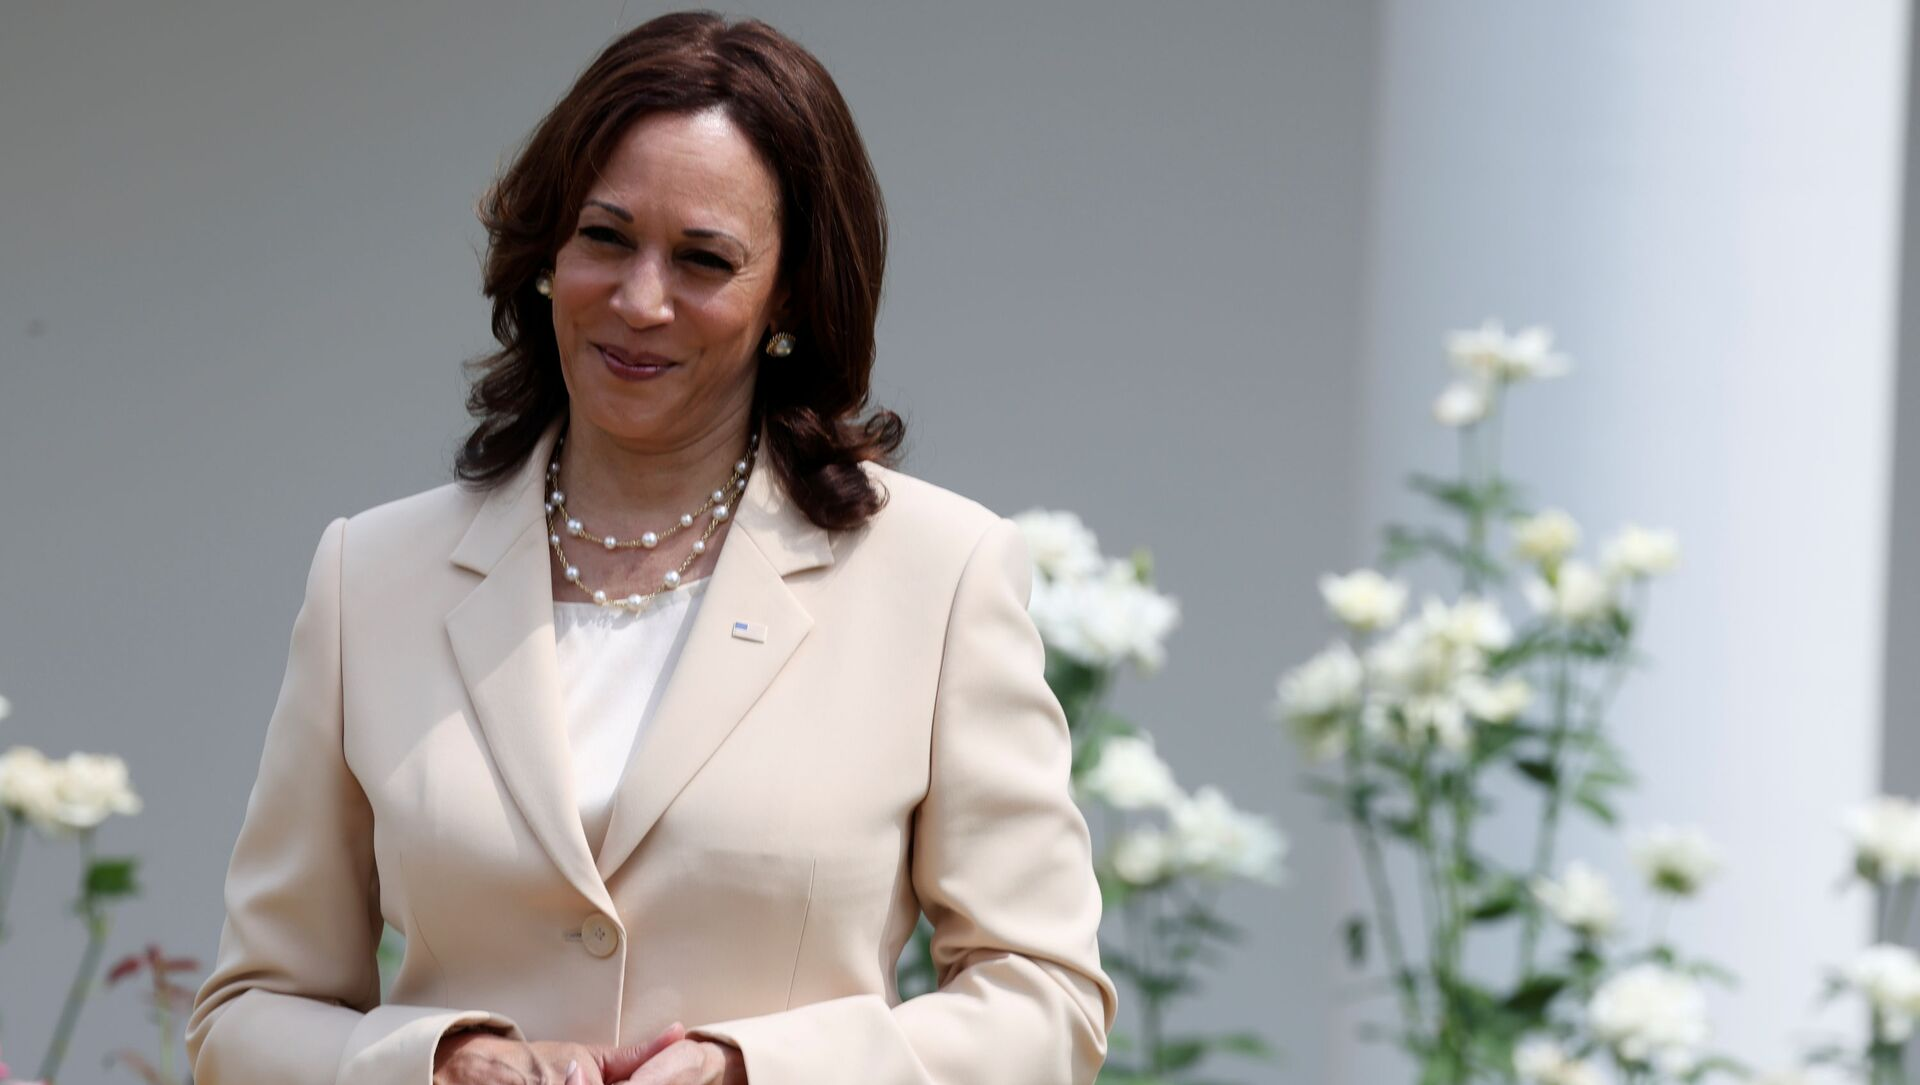 U.S. Vice President Kamala Harris stands by during an event to celebrate the 31st anniversary of the Americans with Disabilities Act (ADA) in the White House Rose Garden in Washington, U.S., July 26, 2021 - Sputnik International, 1920, 31.07.2021